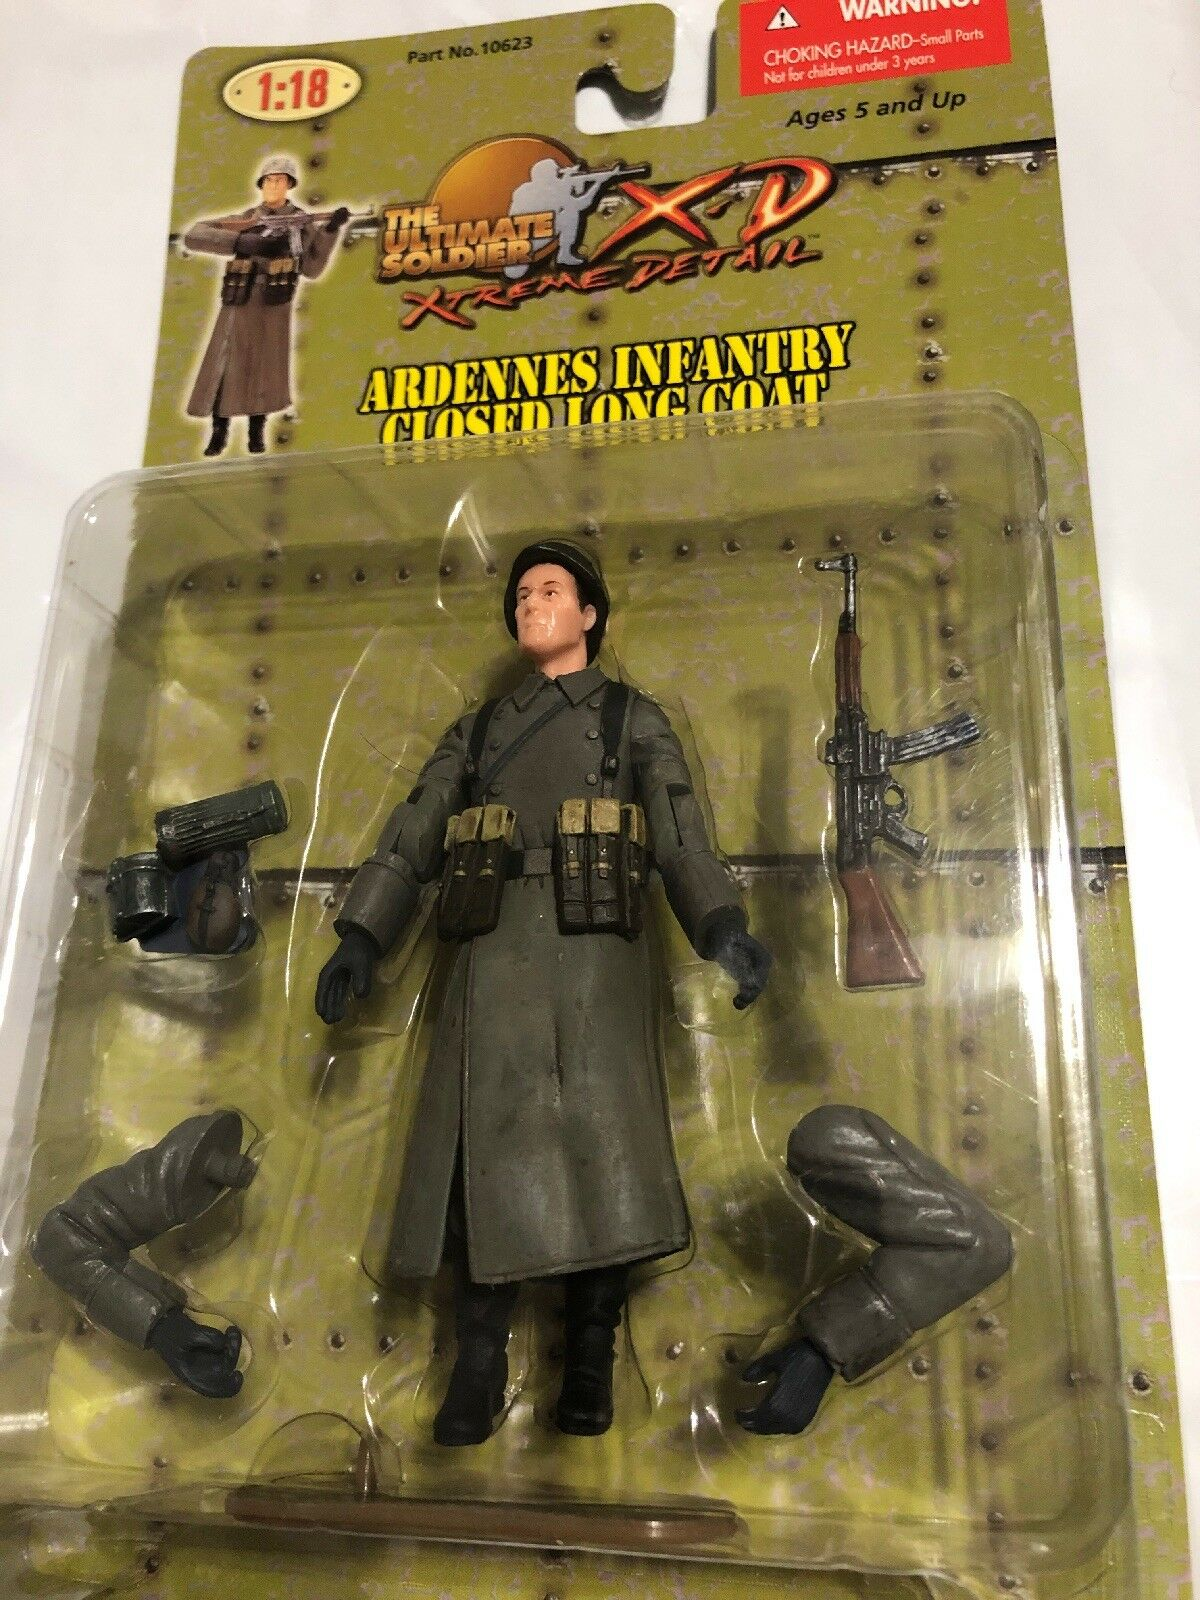 THE ULTIMATE SOLDIER XTREME DETAIL ARDENNES INFANTRY CLOSED LONG COAT